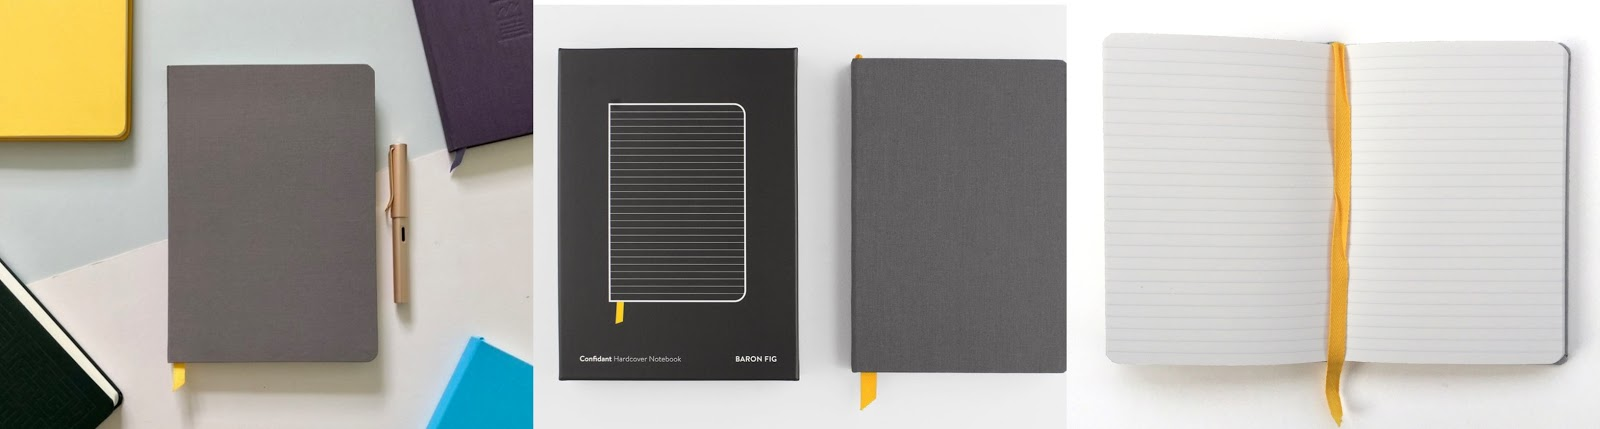 Baron Fig Confidant Hardcover Notebook Pocket in Charcoal